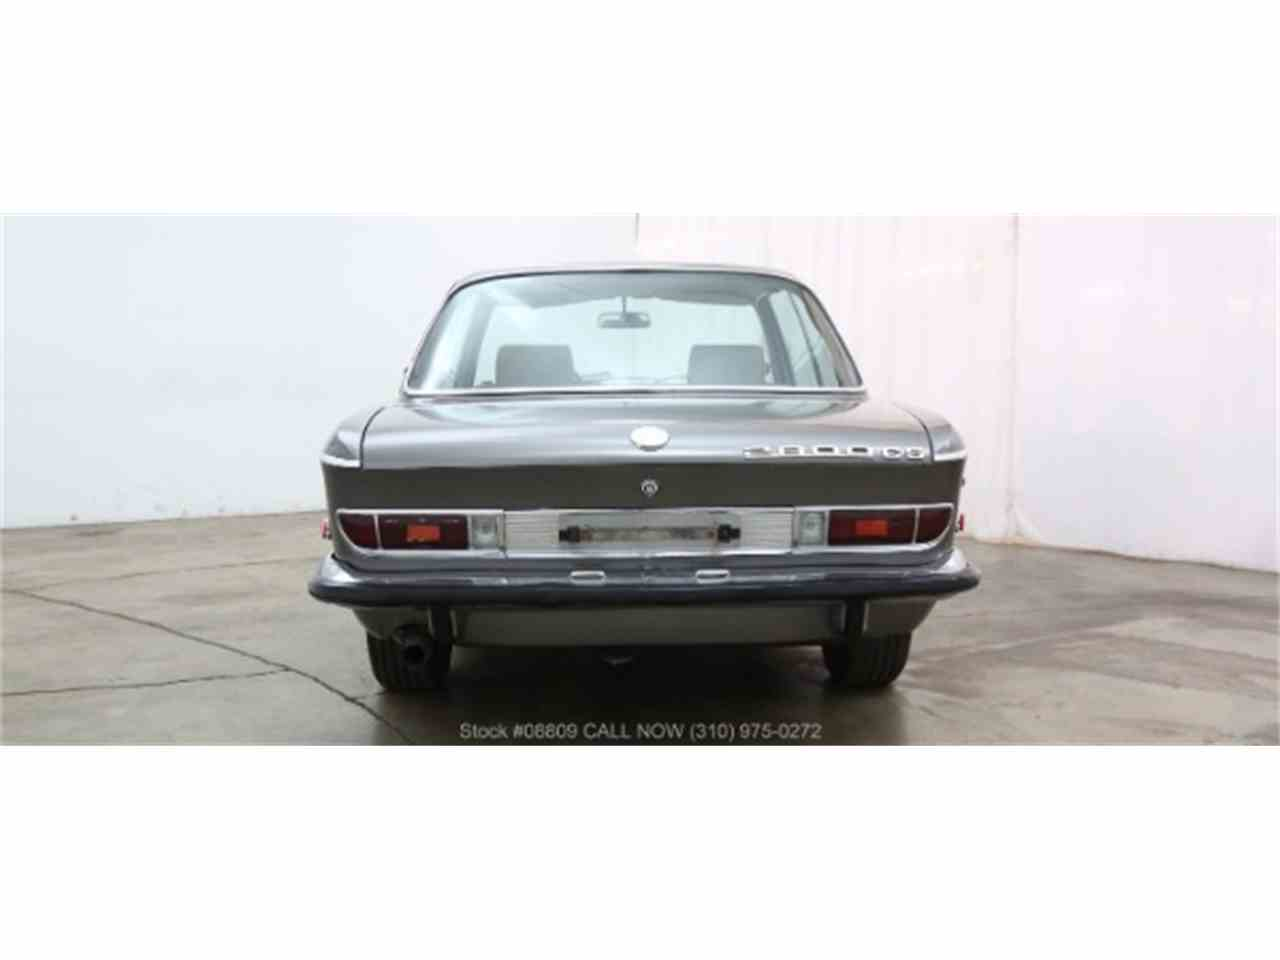 Large Picture of '70 BMW 2800CS - $24,750.00 - MACE